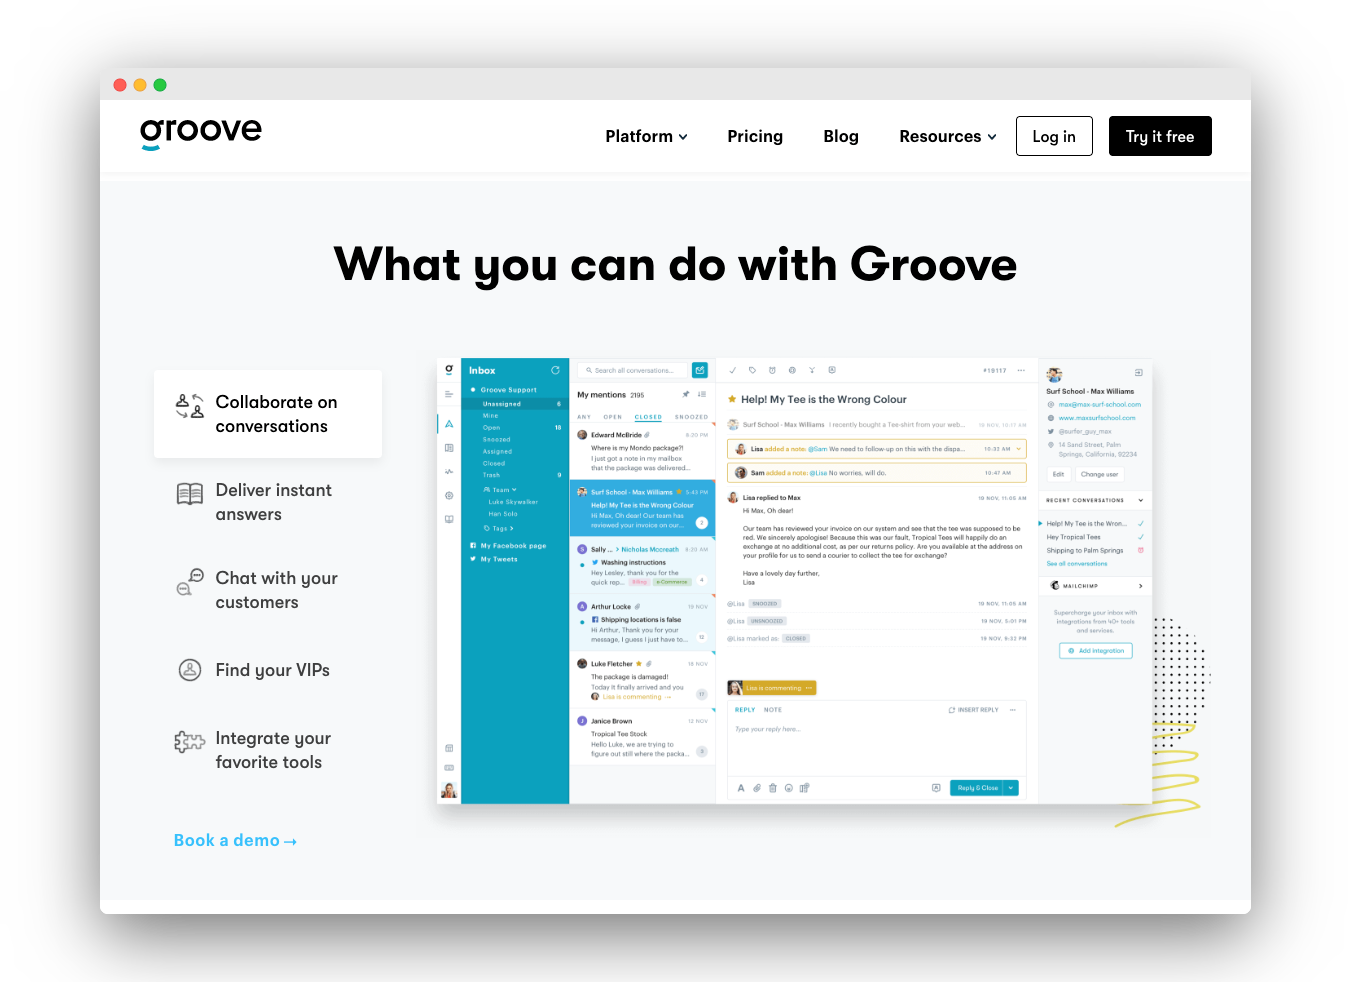 Groove's current homepage